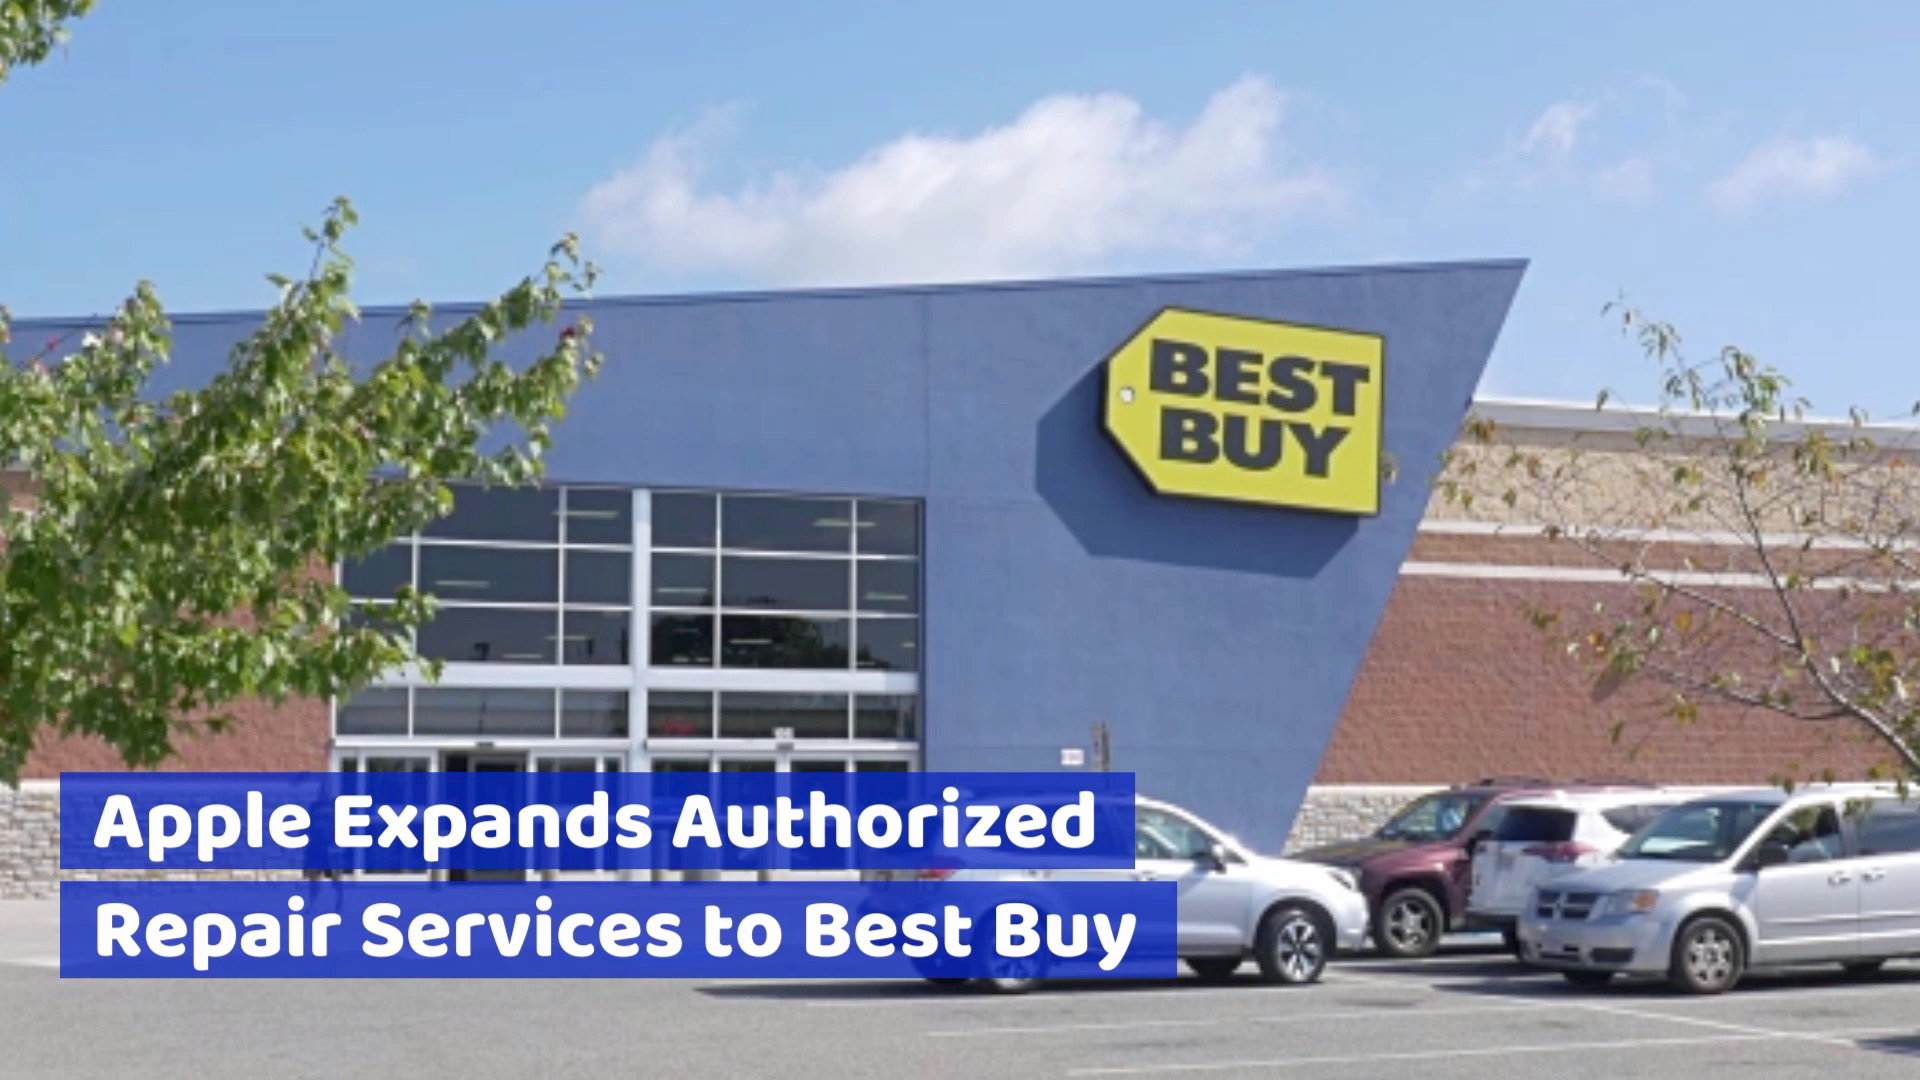 Apple Gives More Control To Best Buy